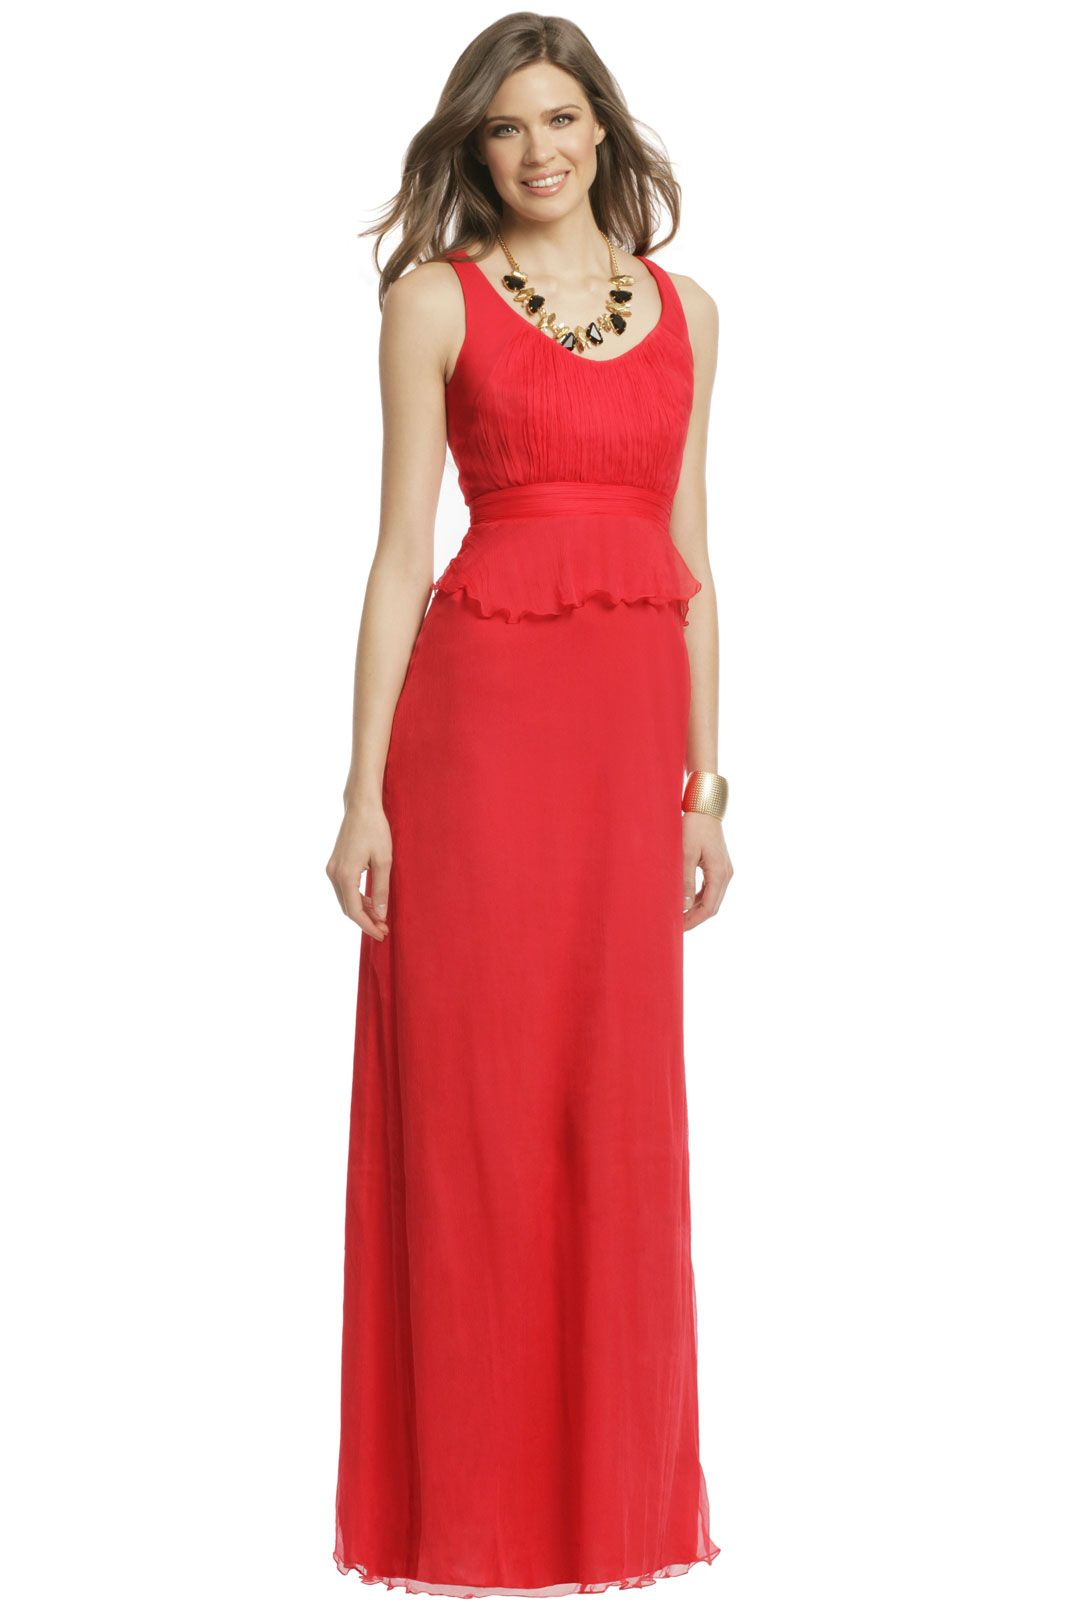 Carlos miele red pepper hot gown my favorites pinterest red